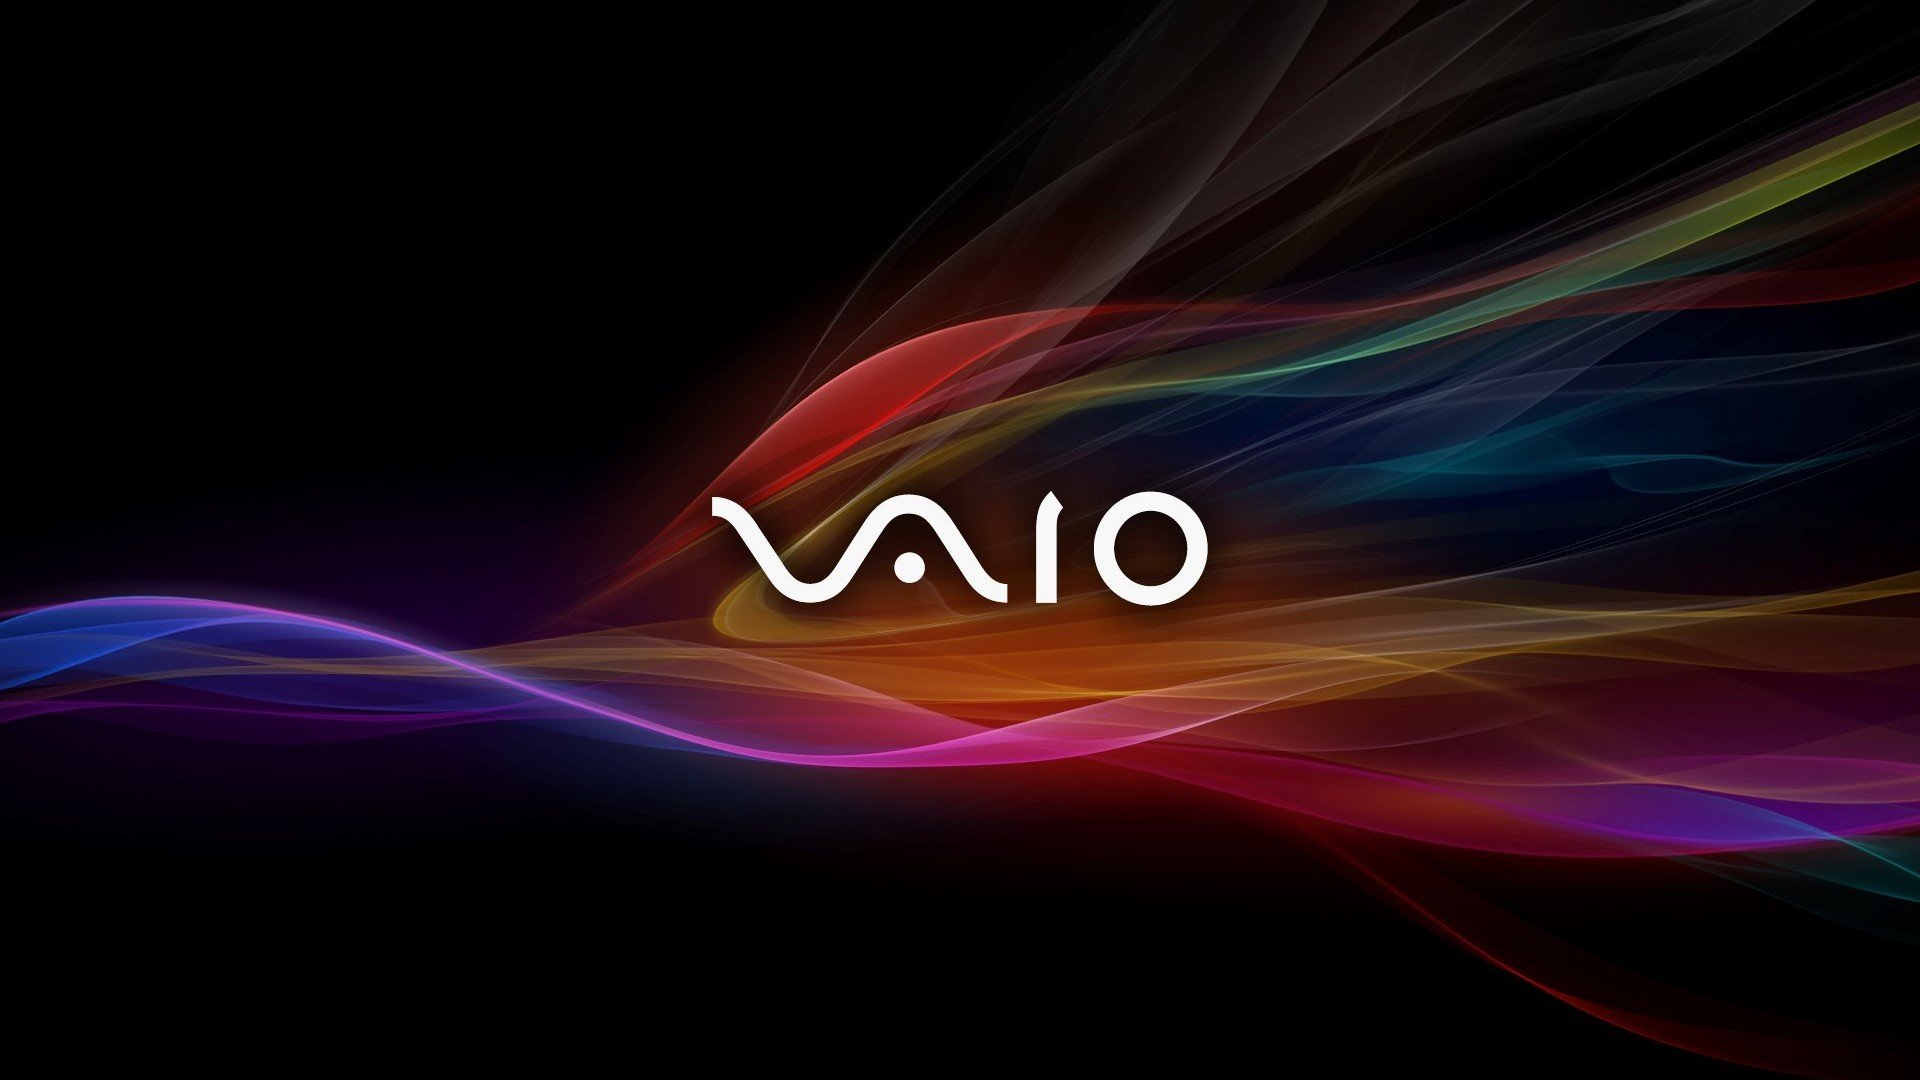 sony vaio wallpaper 1920x1080 wallpapersafari